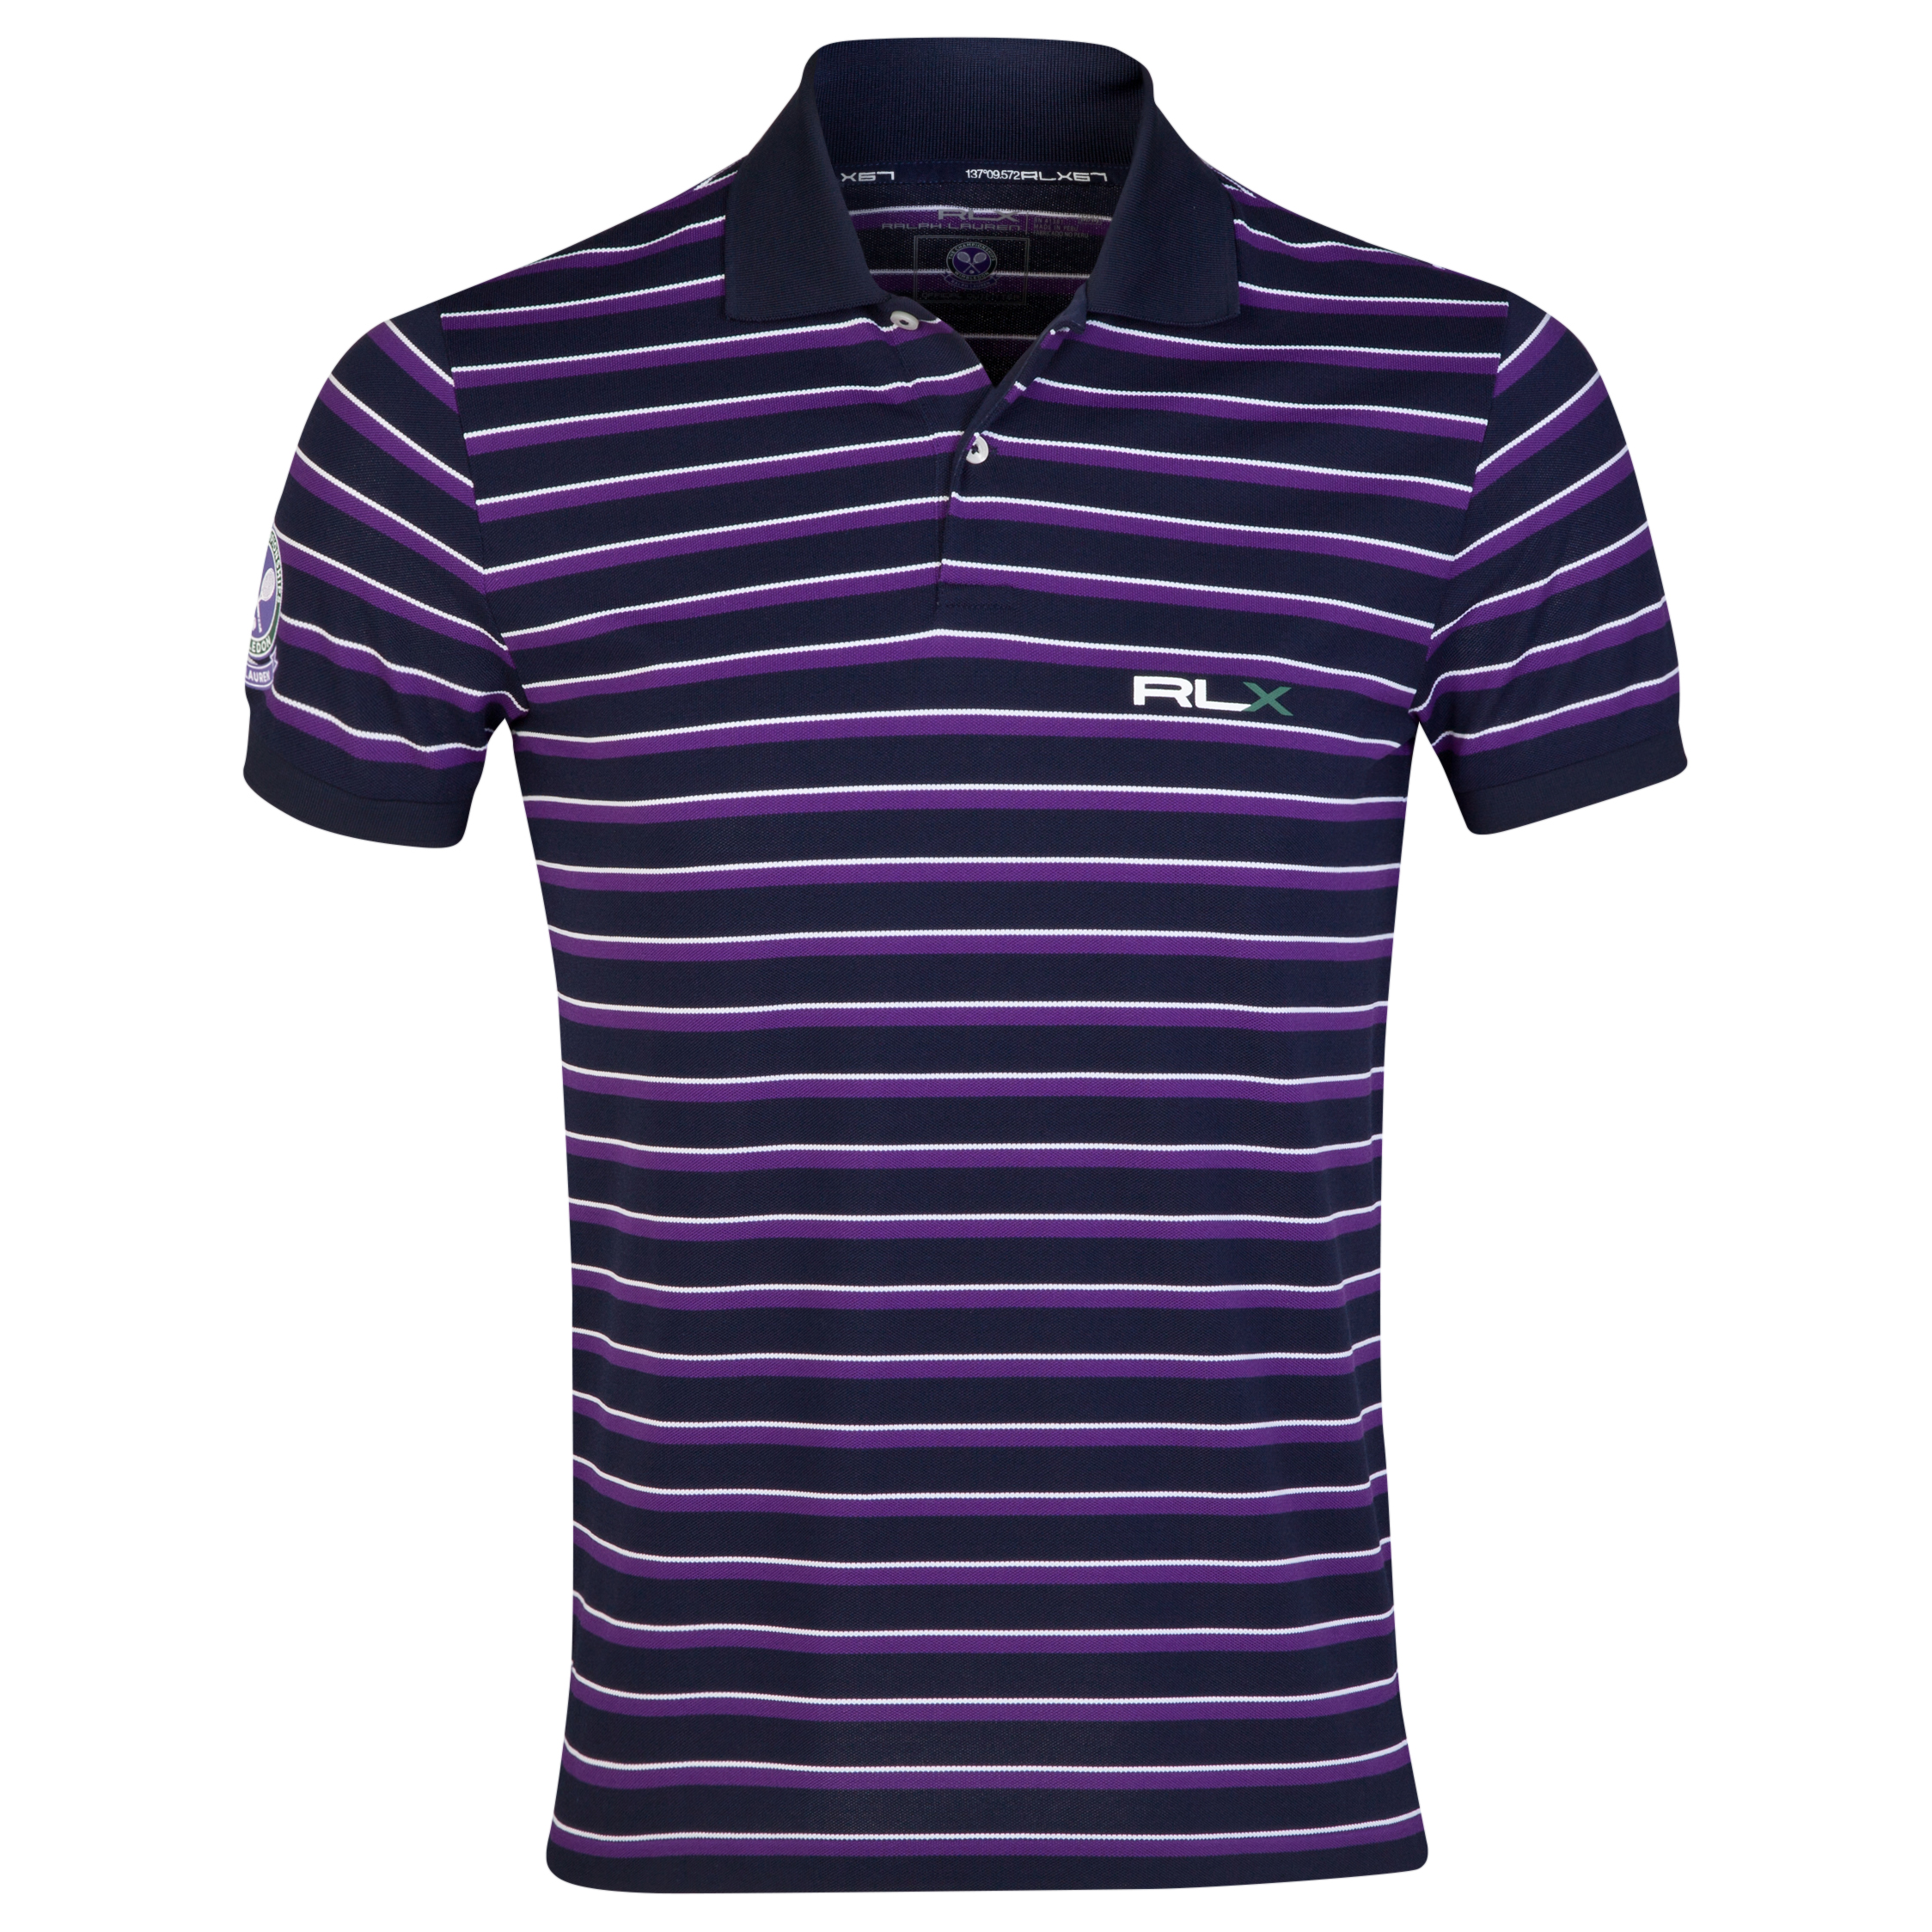 Wimbledon Polo Ralph Lauren Pima Stretch RLXTech Polo - French Navy/Multi